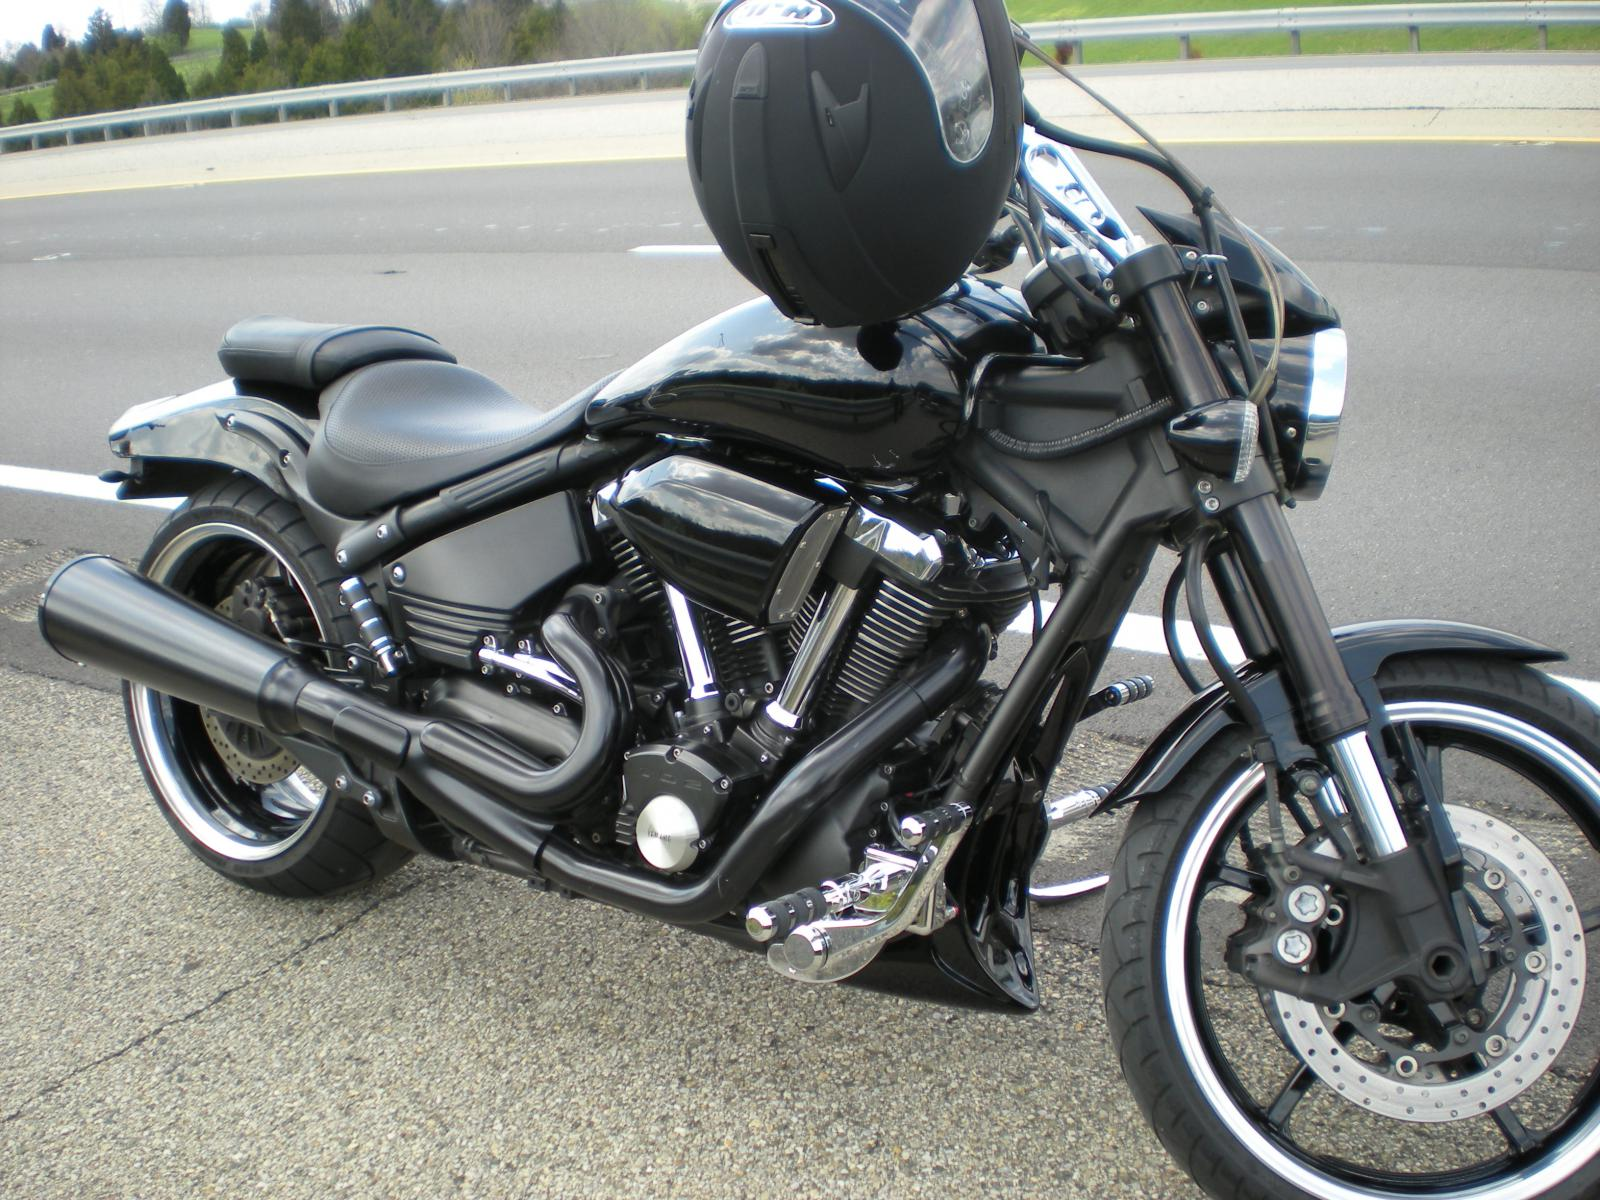 Click image for larger version  Name:Pulled over for a Harley.jpg Views:427 Size:303.4 KB ID:2366